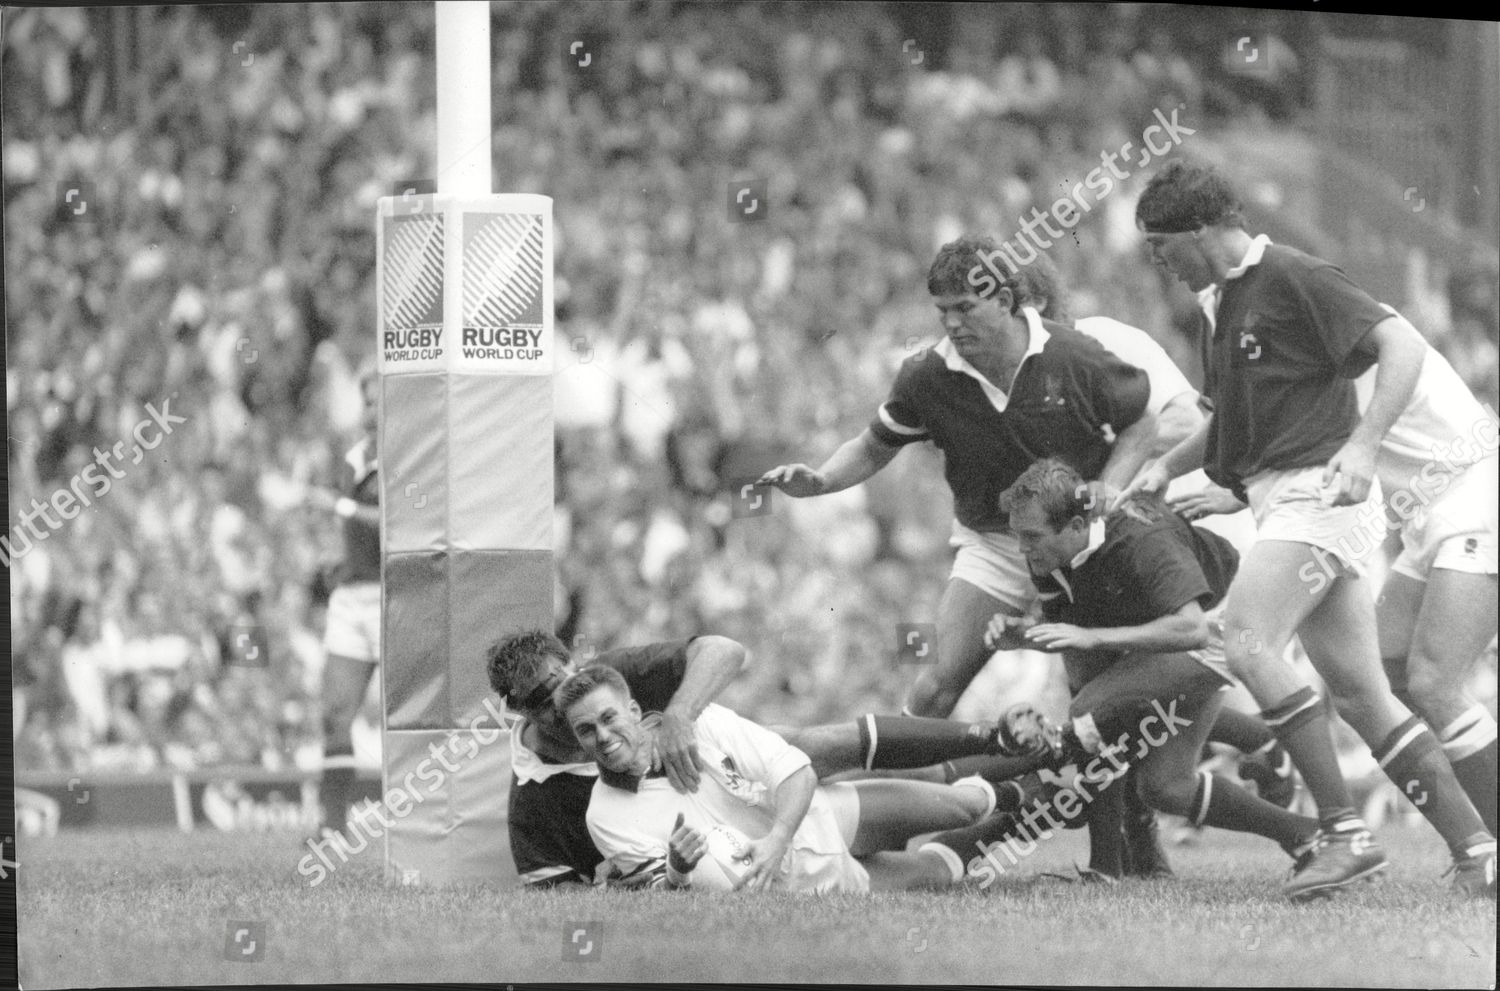 Rugby Union World Cup 1991 England 37 V Usa 9 Englands Nigel Heslop Scores